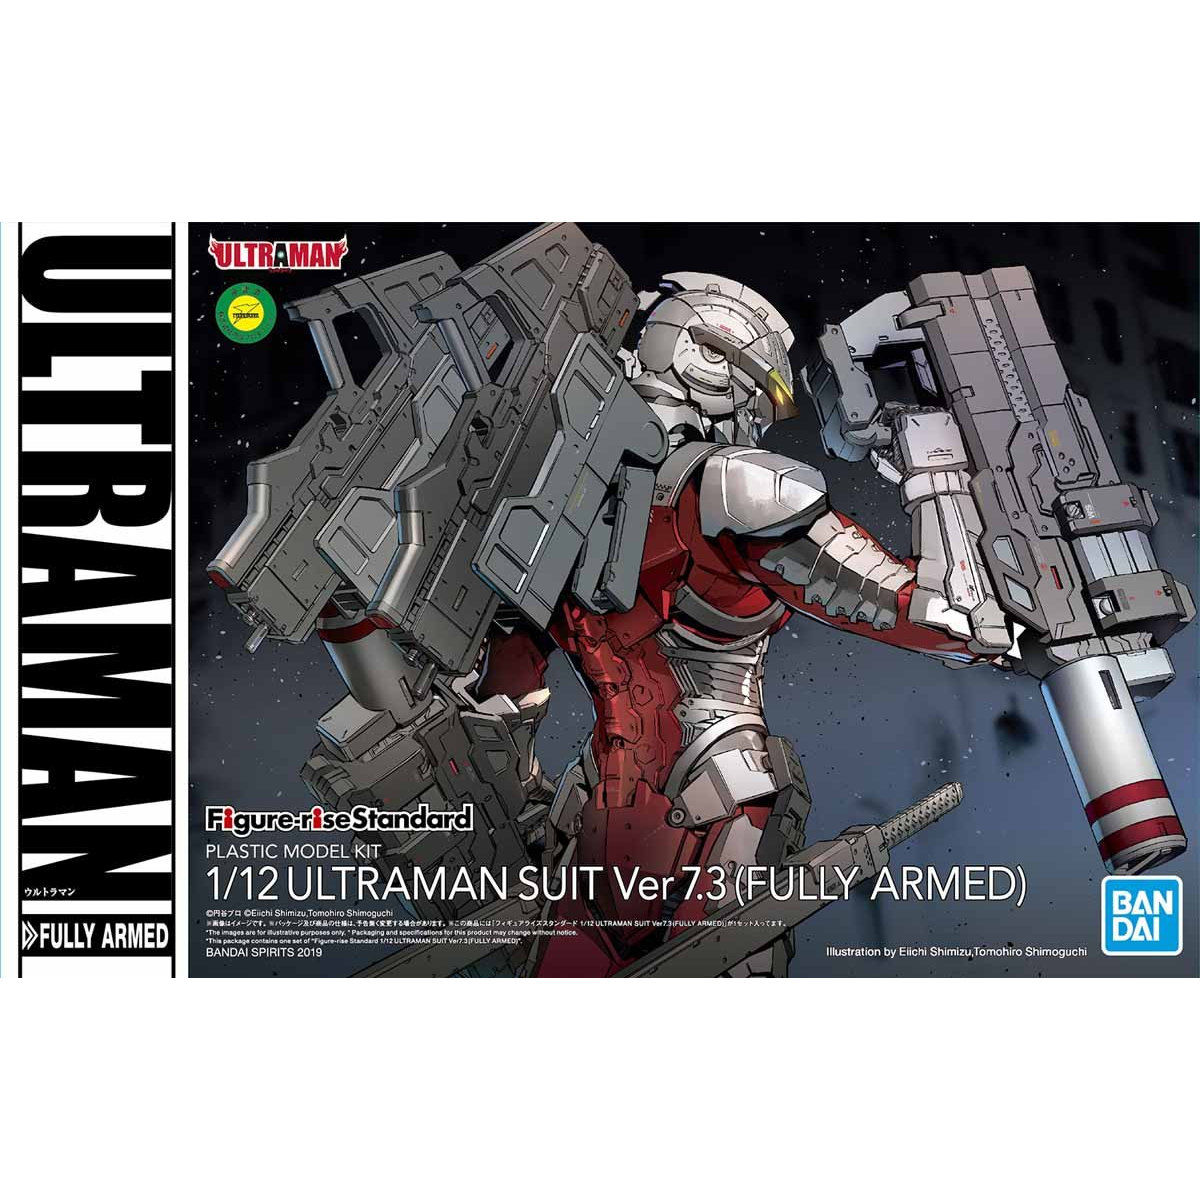 Figure-rise Standard 1/12 ULTRAMAN SUIT Ver7.3(FULLY ARMED) 09